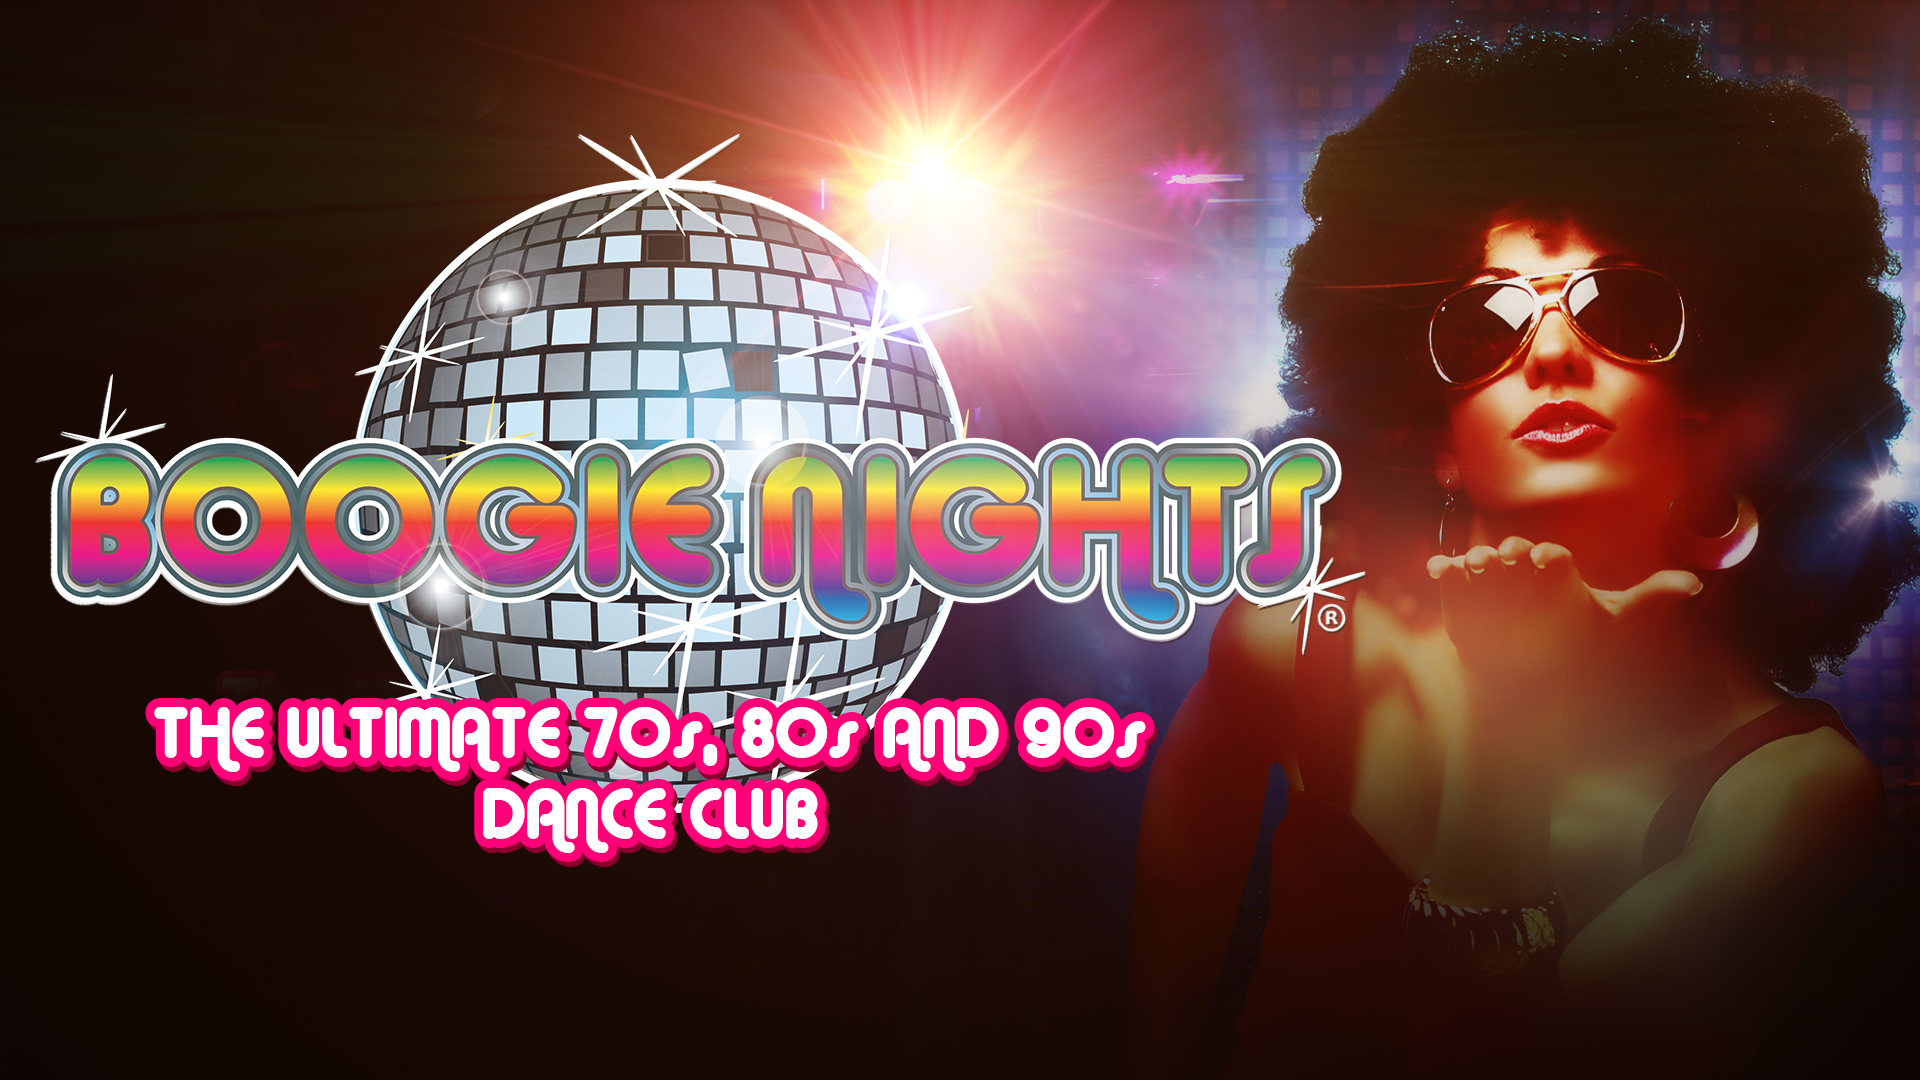 Boogie Nights Show Tour